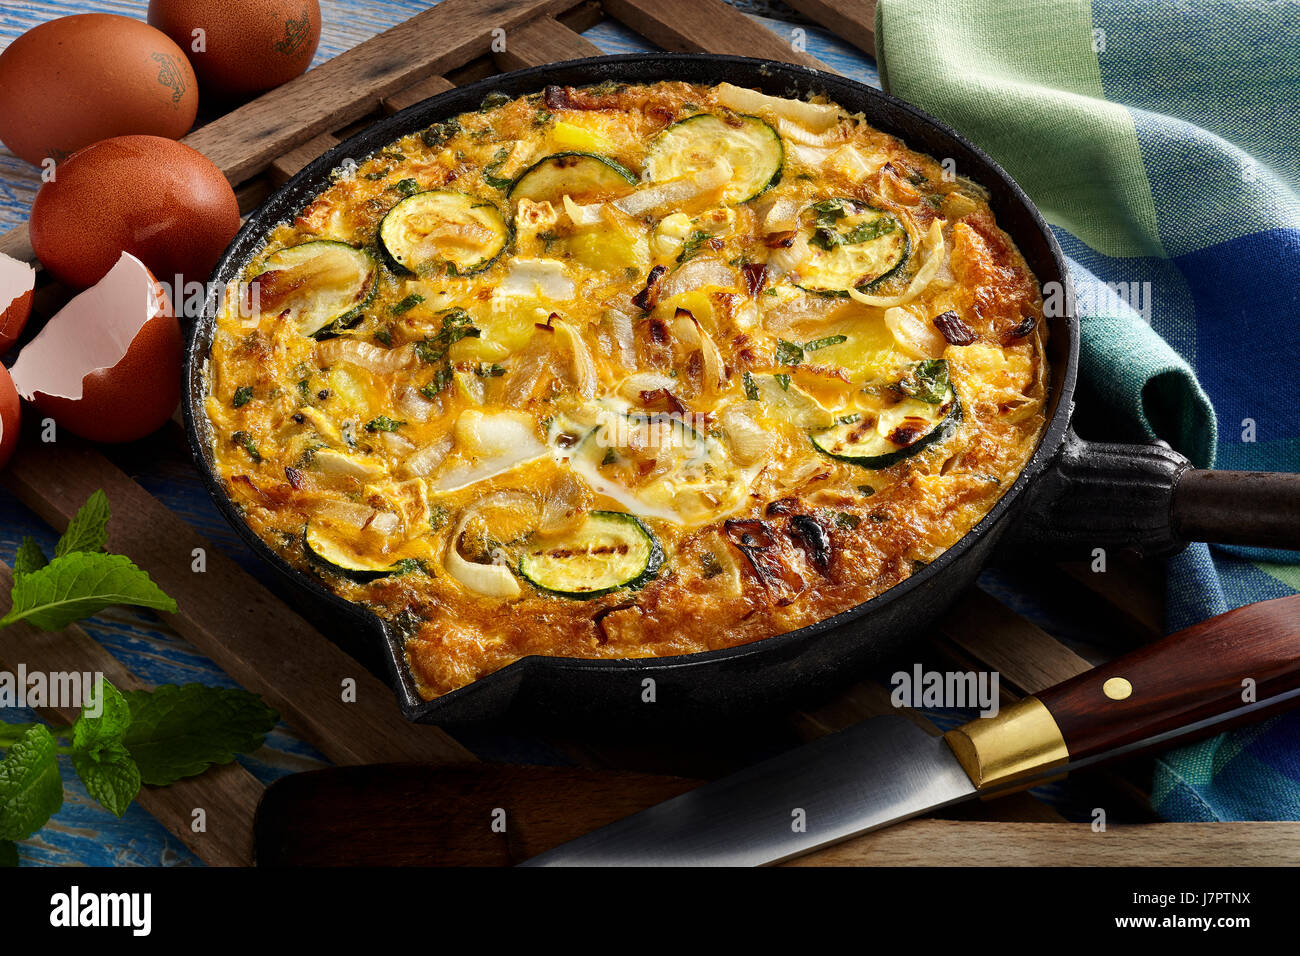 Courgette mint frittata - Stock Image